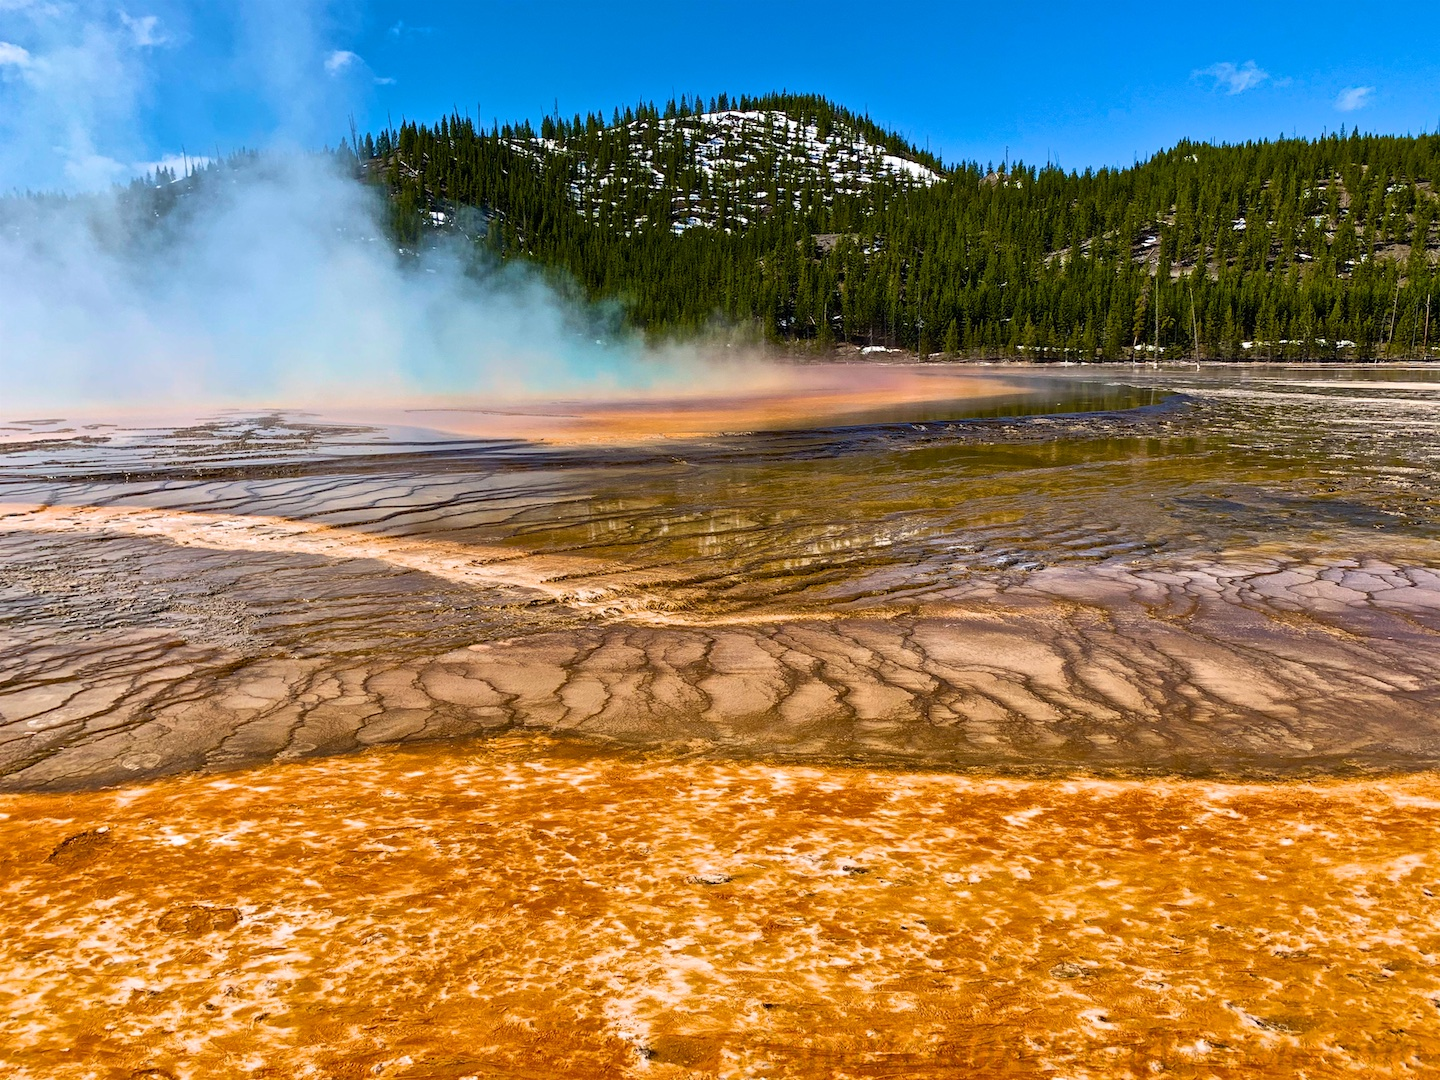 The forest of microorganisms by the Grand Prismatic Spring, Yellowstone National Park, USA